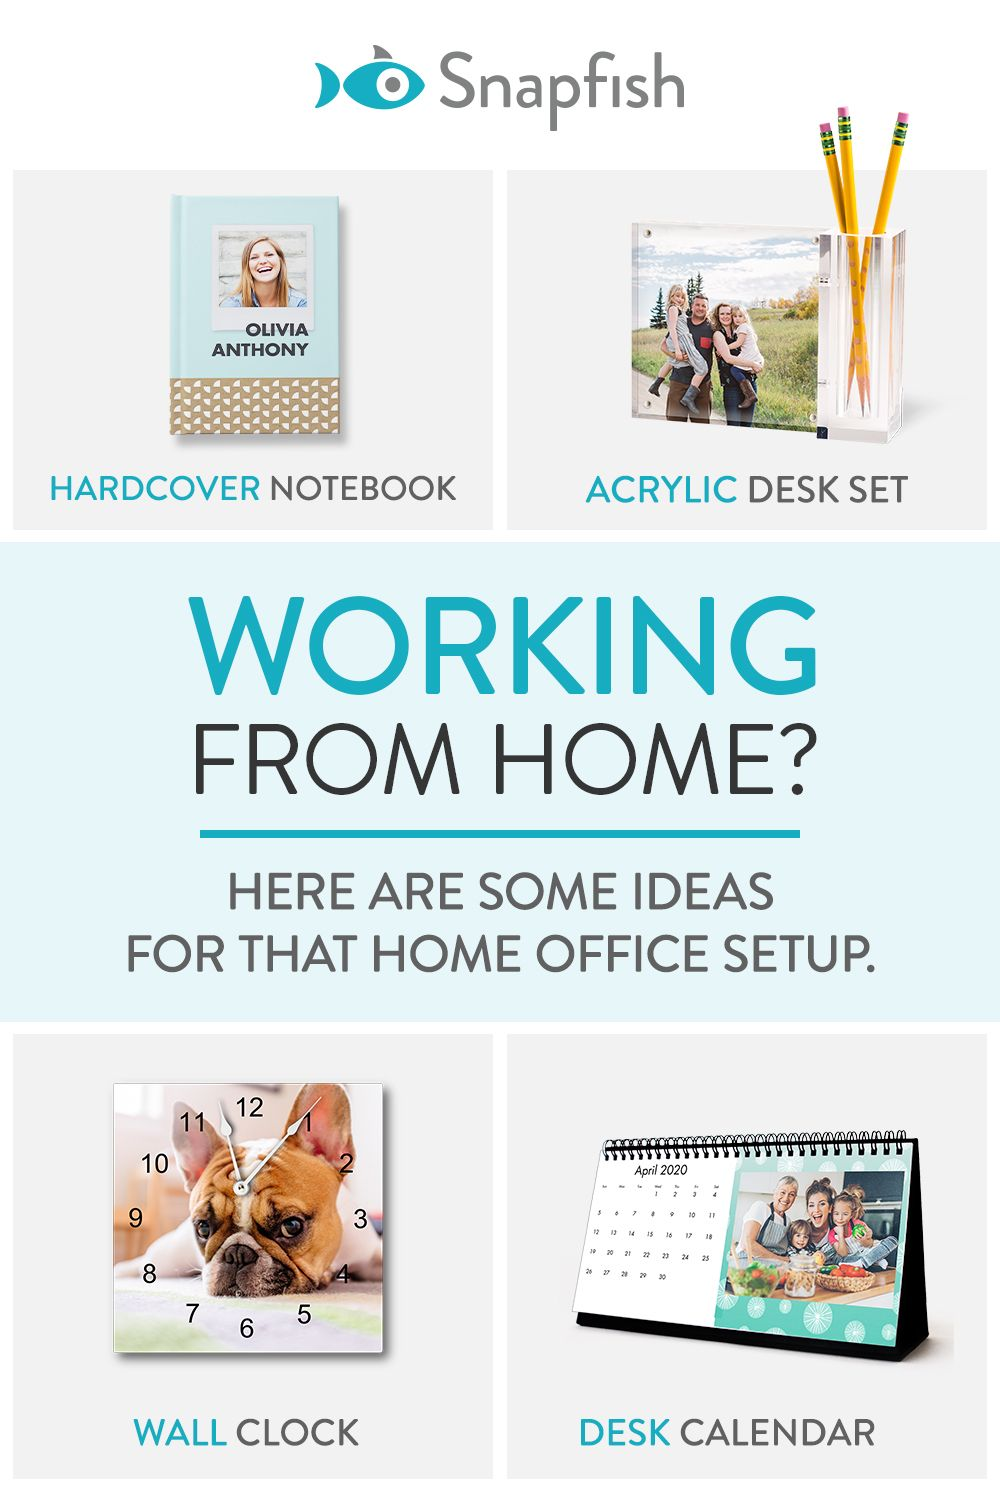 Personalize Home Office Custom Notebooks Business Cards Snapfish Us In 2020 Home Office Snapfish Office Setup